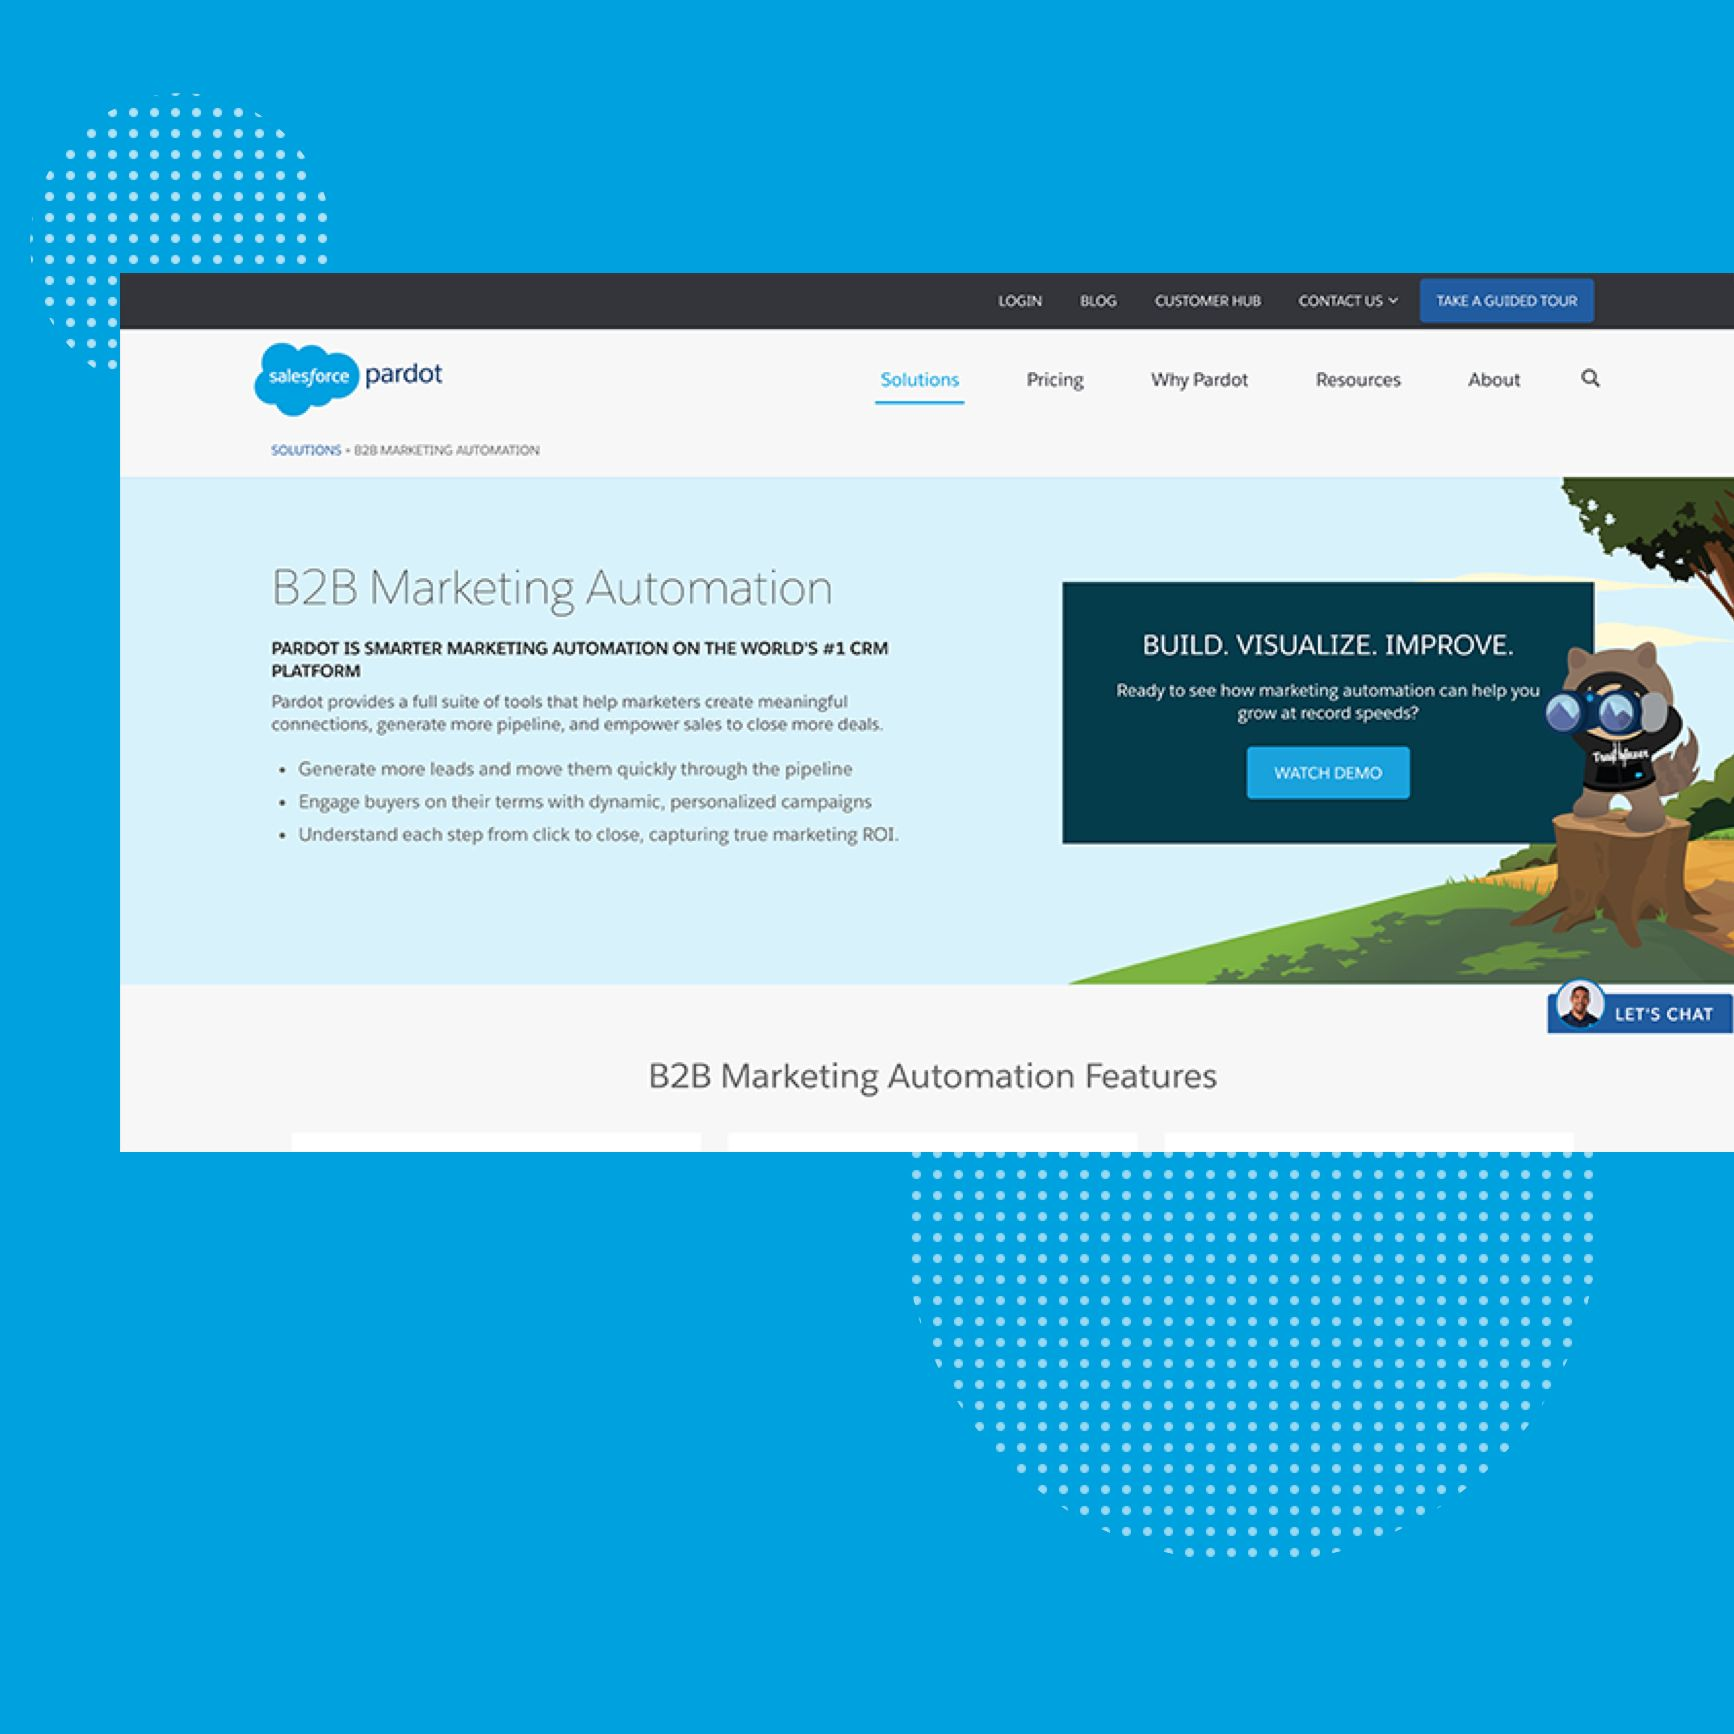 audimex - Ansicht der Website B2B Marketing Automation